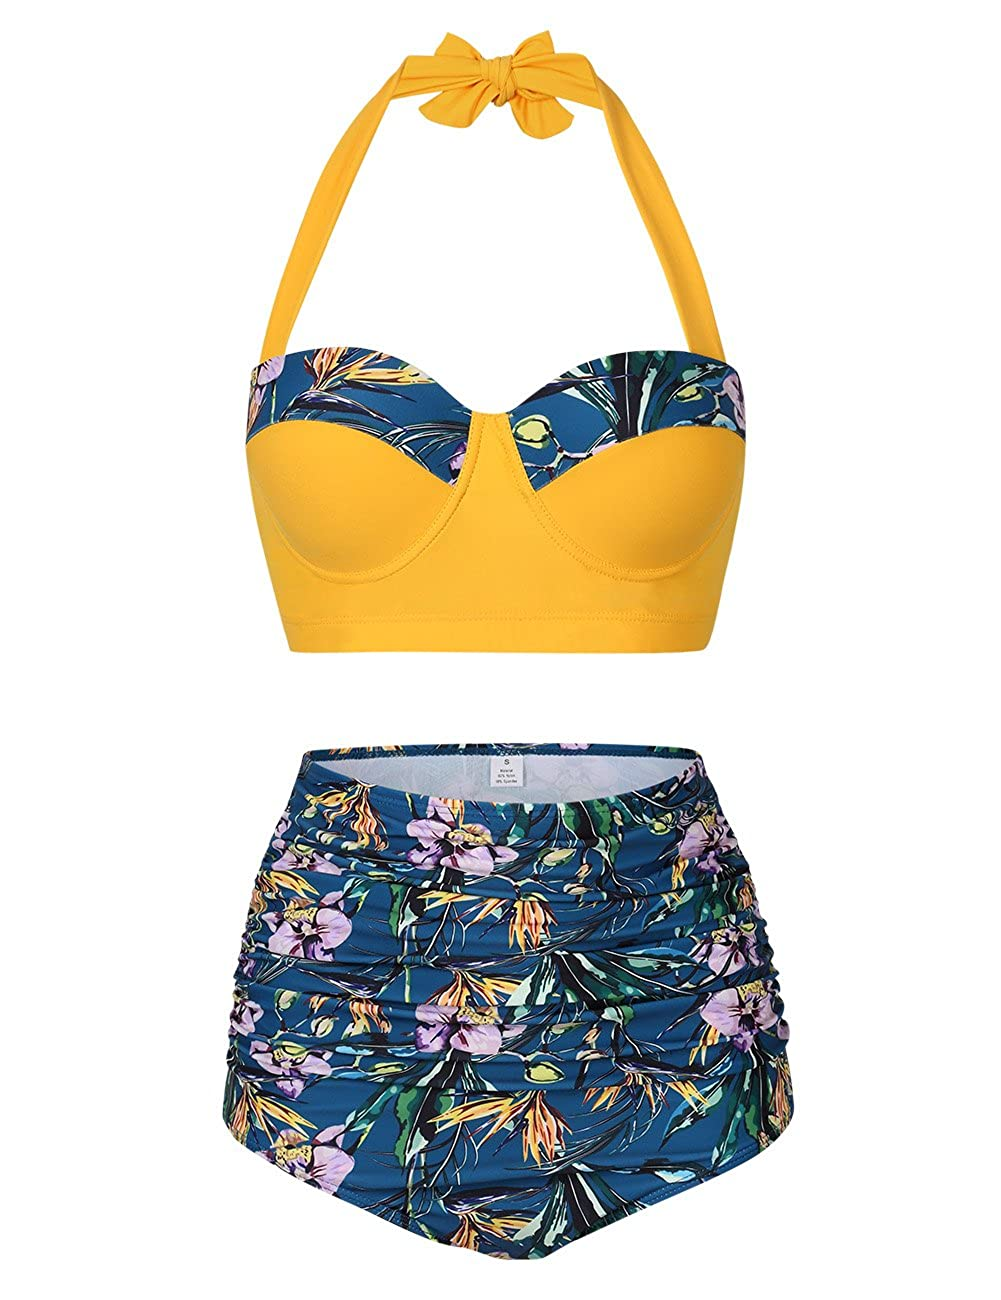 HiMiss Women Retro 50s Floral Print Bathing Suit Padded Bra High Waist Bikini Swimsuit